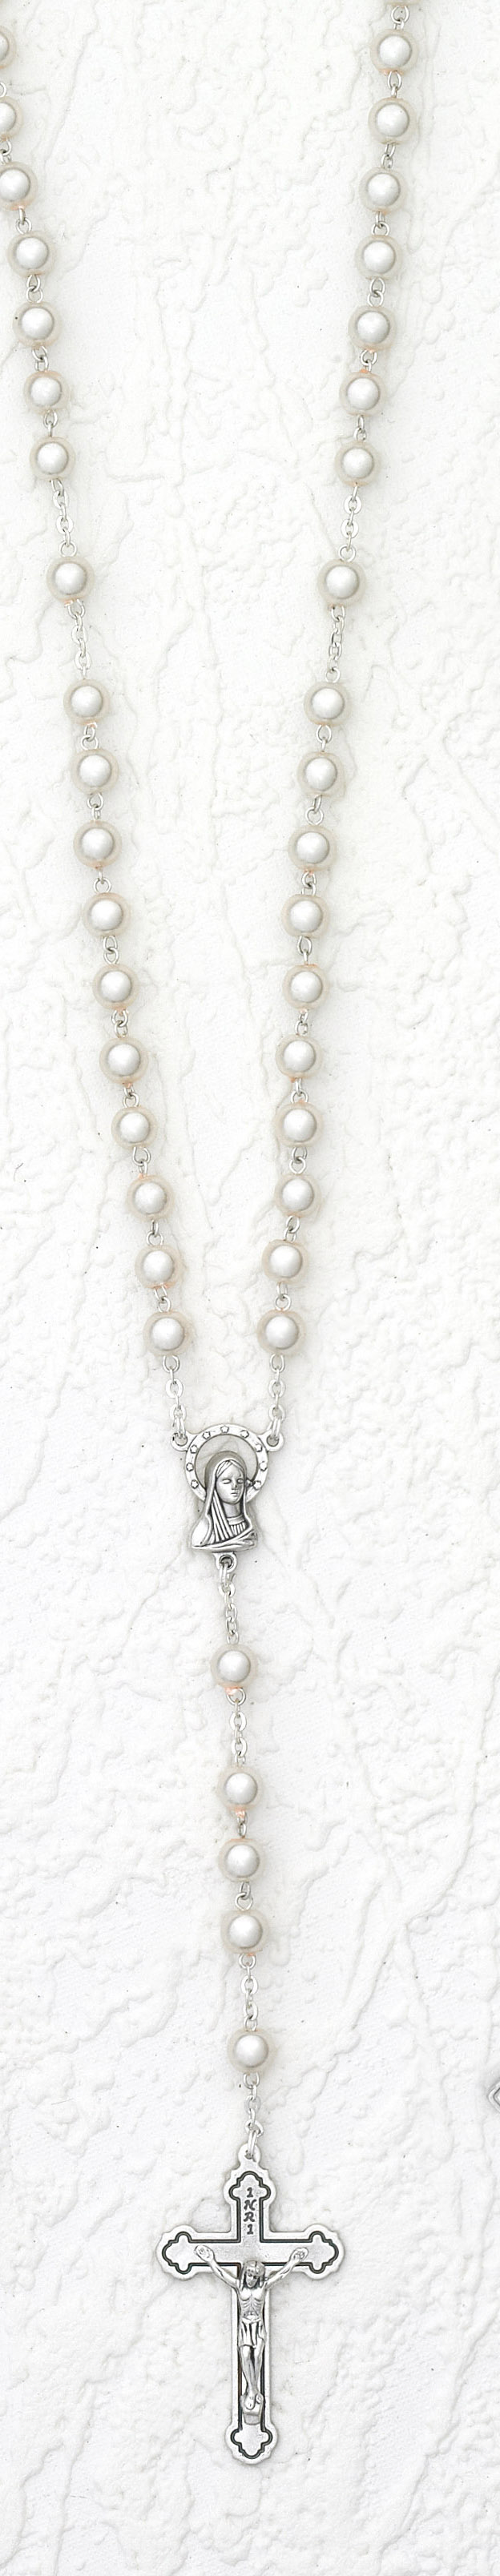 8mm Pearl Rosary with Round Beads Boxed